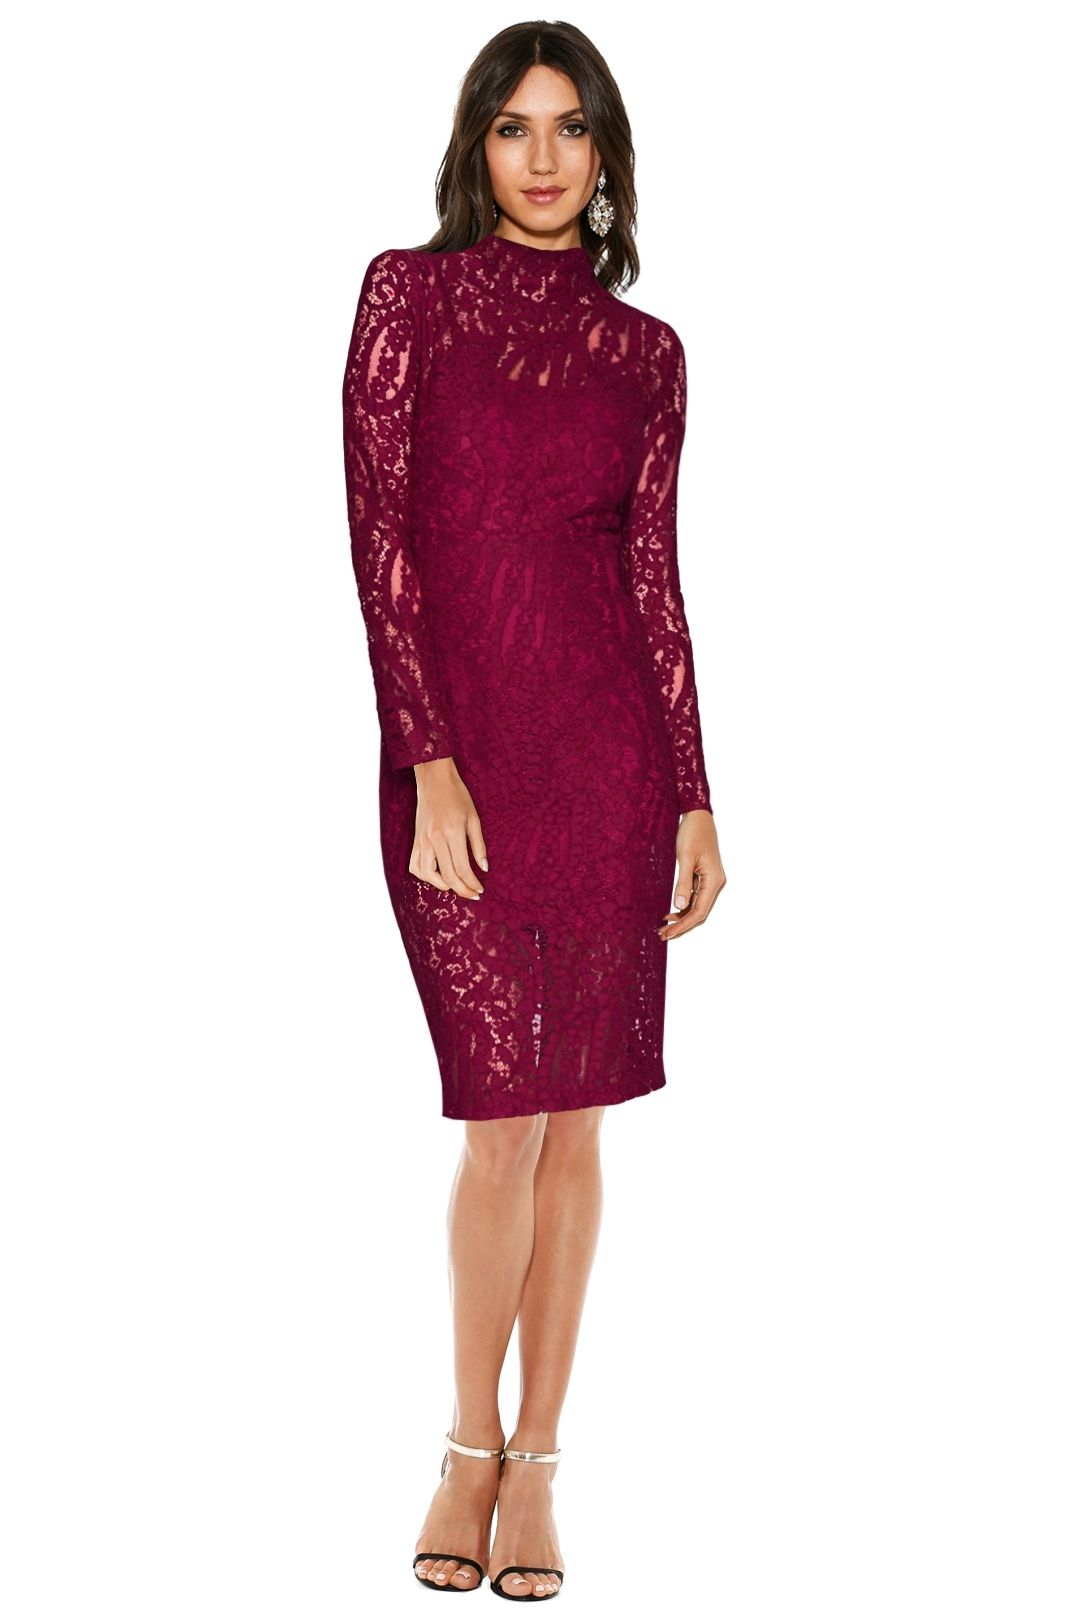 Rodeo Show - Thea Lace Dress - Fuchsia - Front